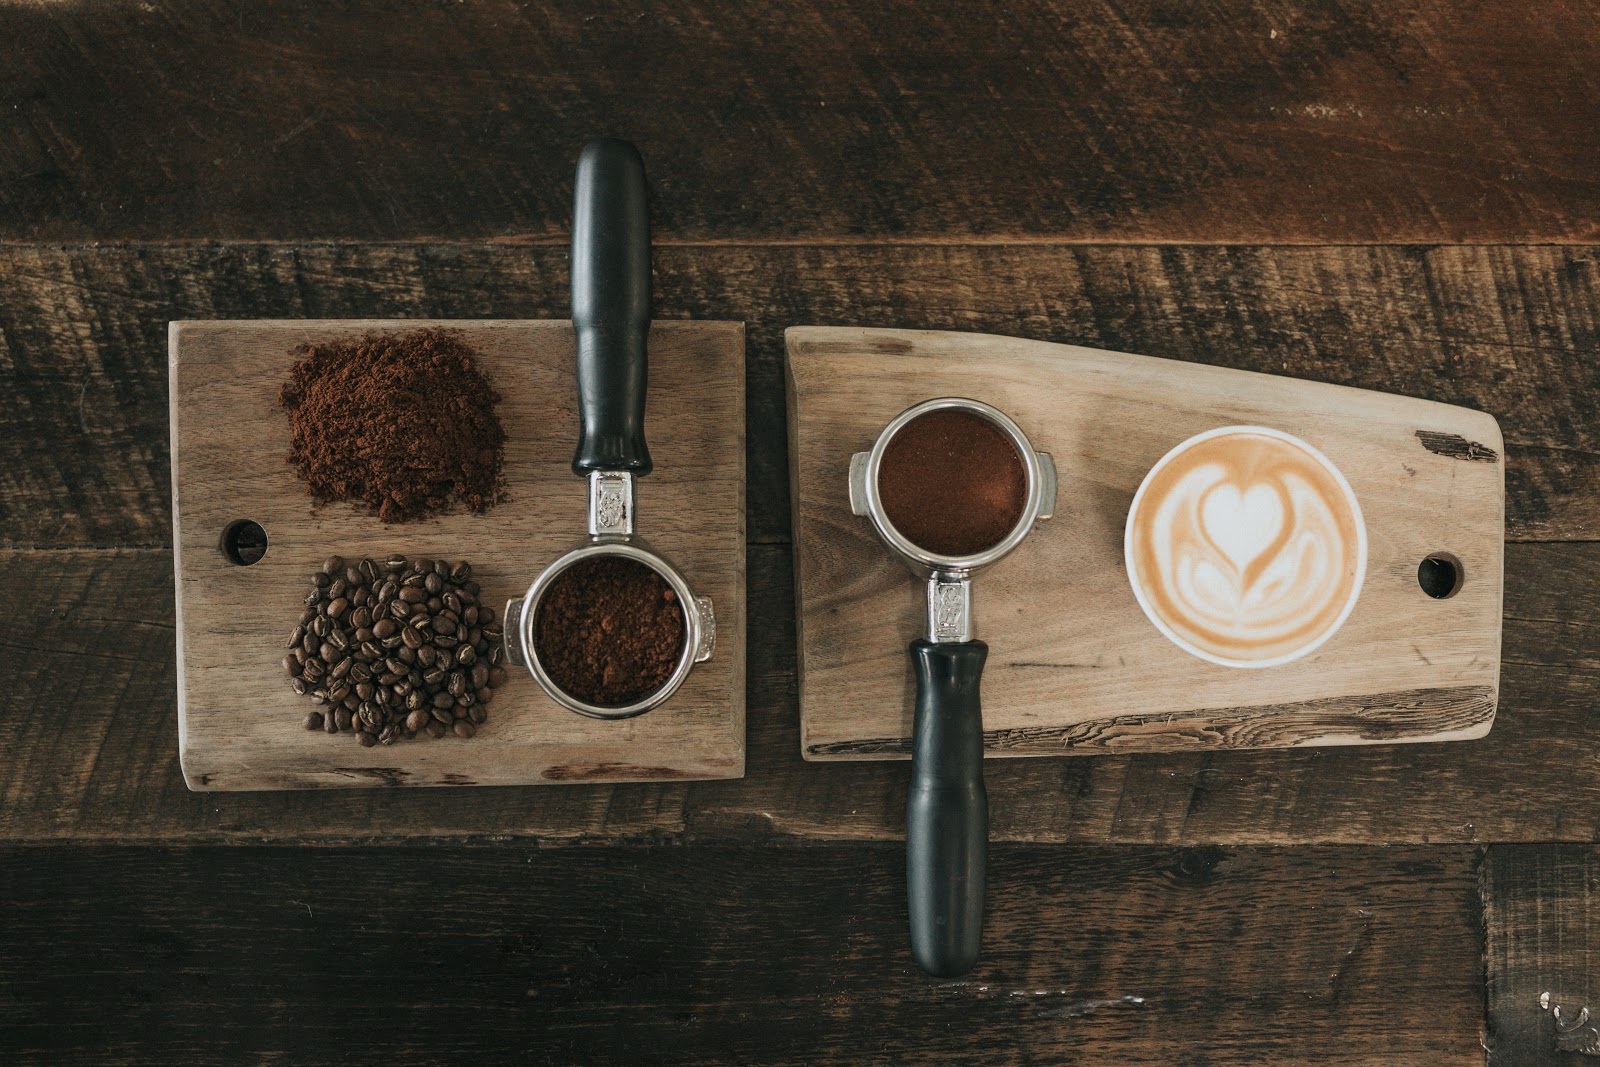 a variety of coffee beans, coffee grounds, and a cup of coffee placed on a wooden board